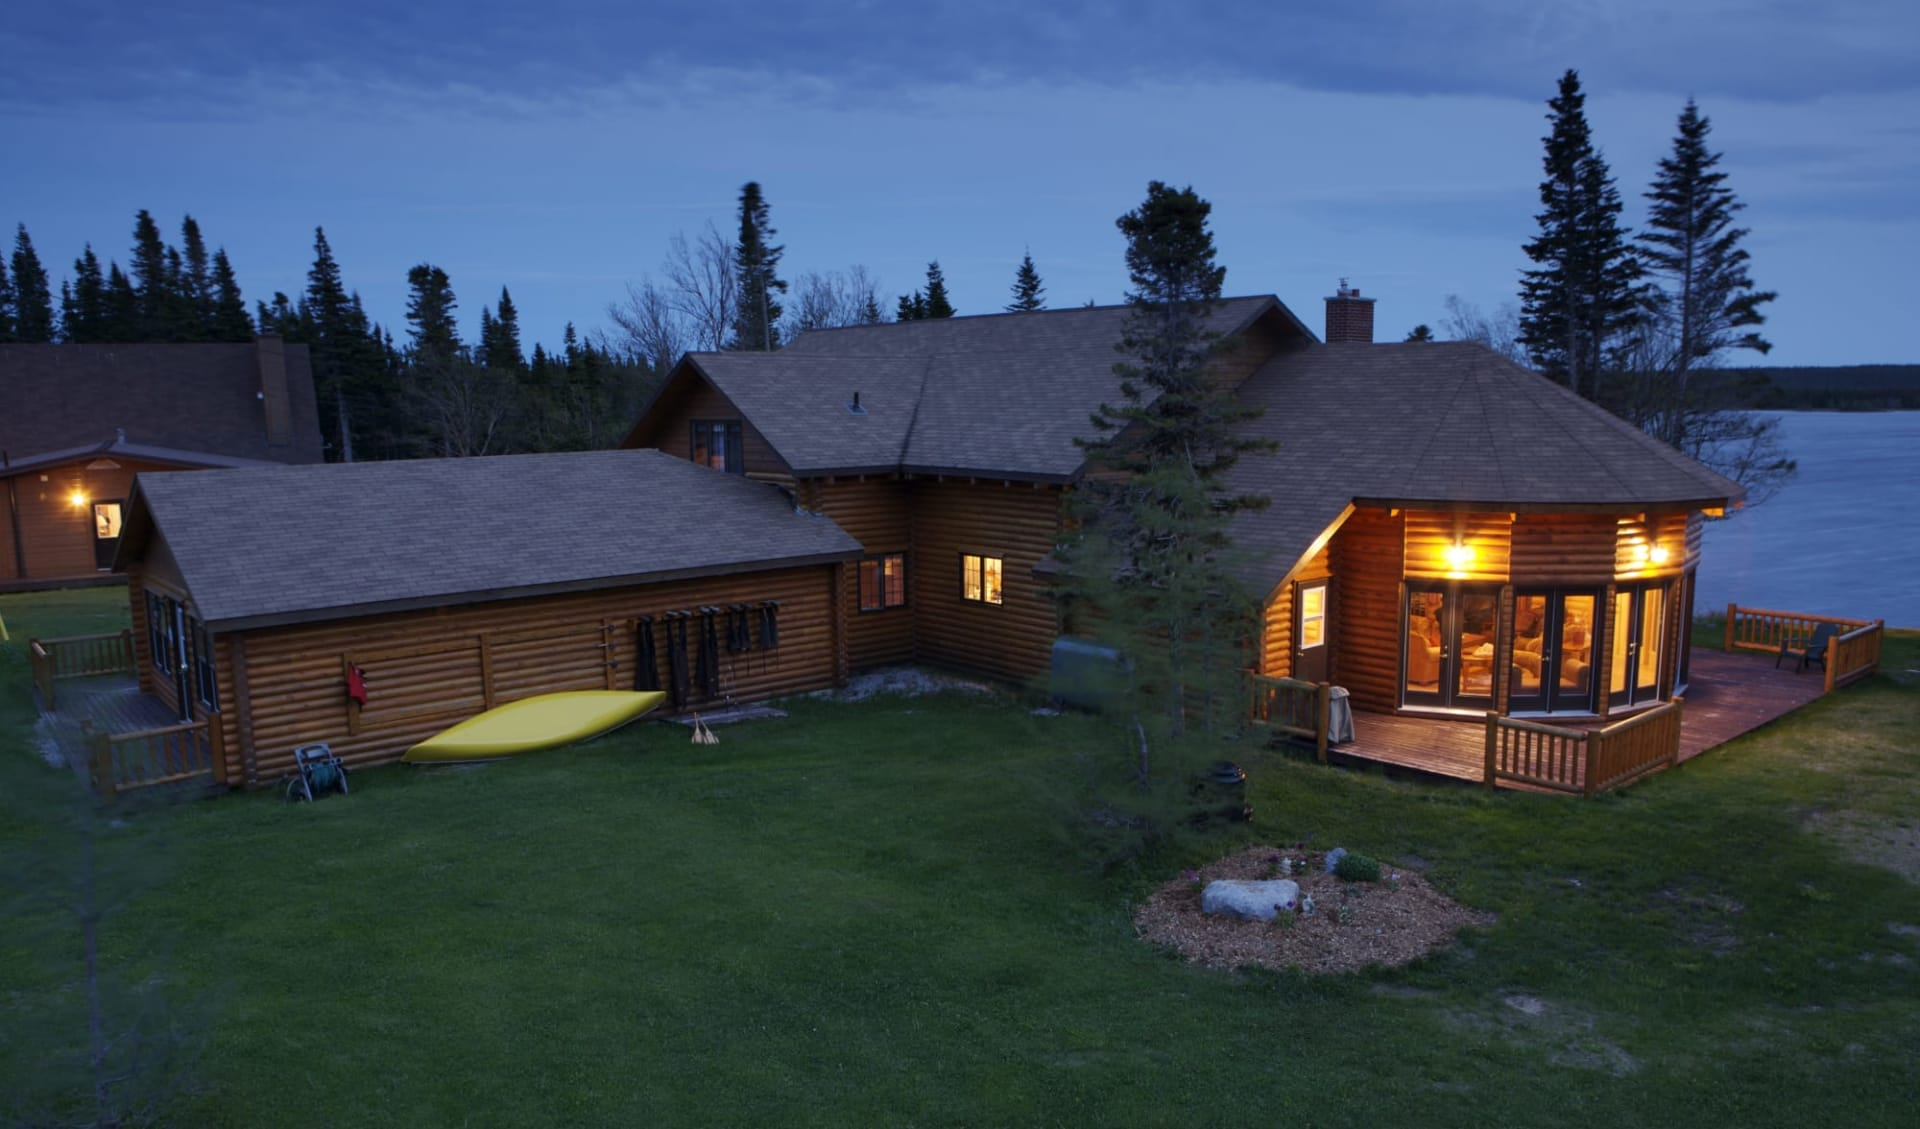 Tuckamore Lodge & Country Inn in St. Anthony: Aussenansicht